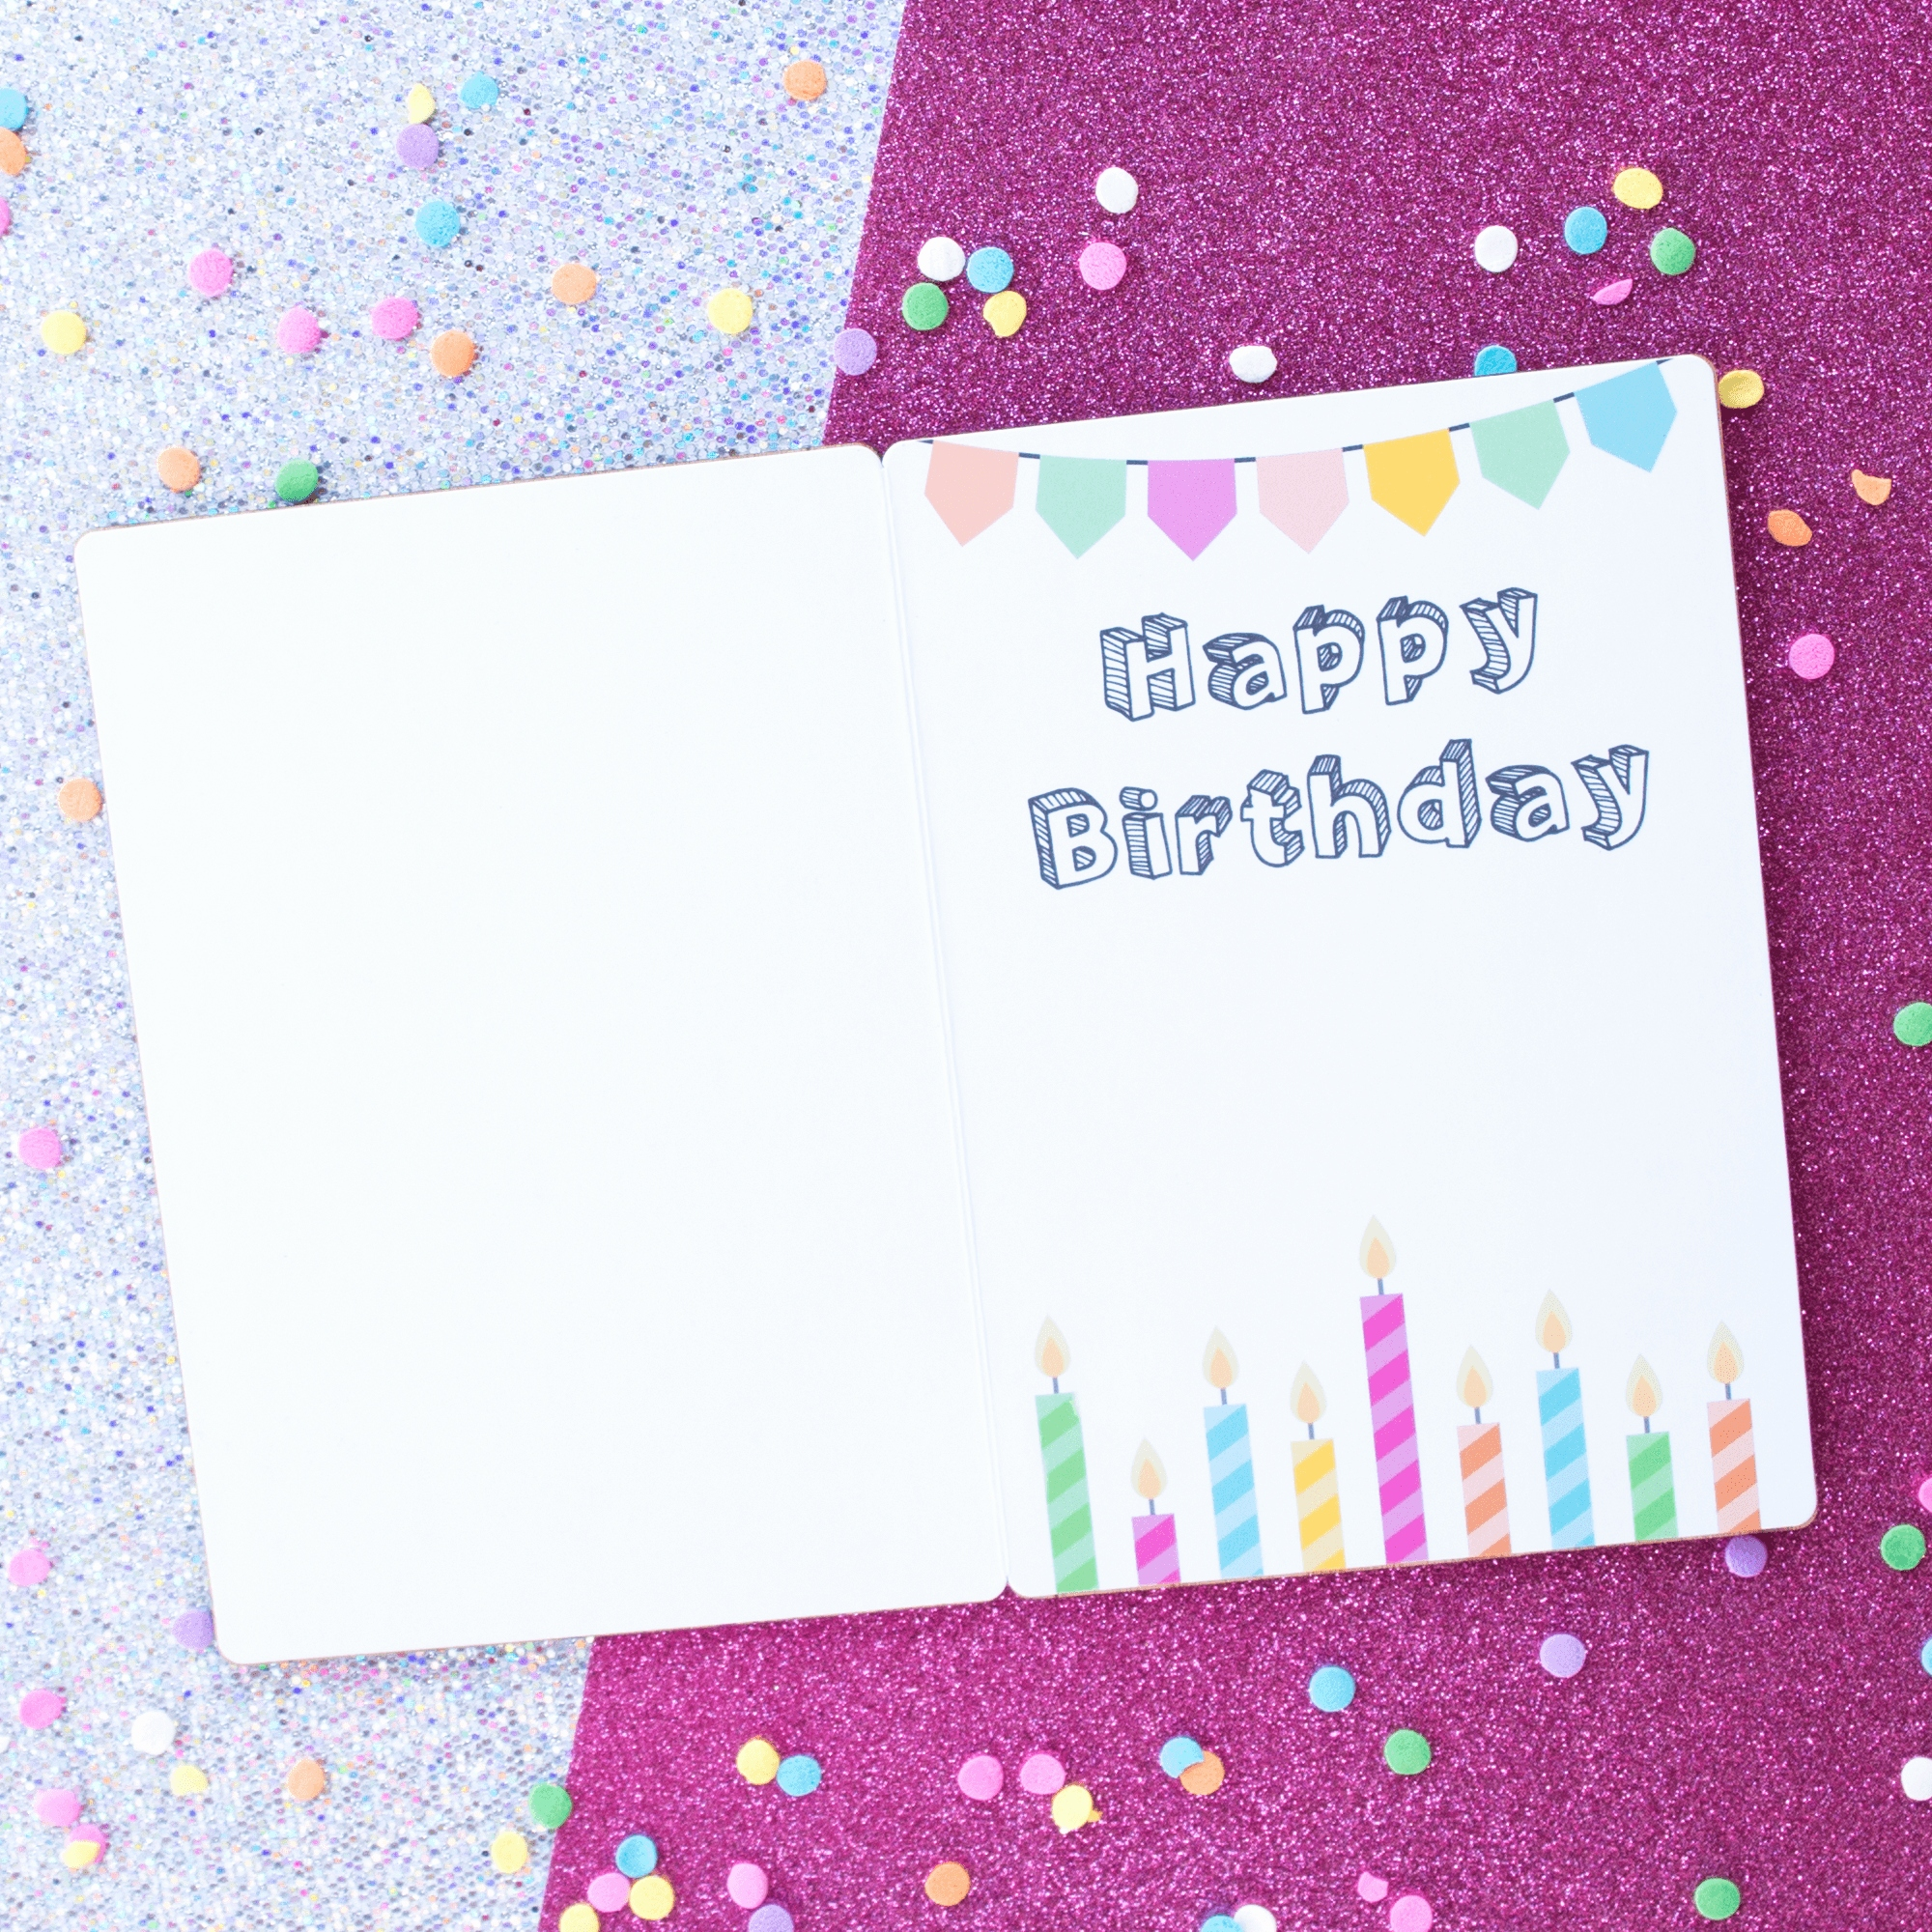 can i blow your birthday candle card ; can-i-blow-your-birthday-candle-card-luxury-birthday-cake-frosting-birthday-card-heartspace-cards-of-can-i-blow-your-birthday-candle-card